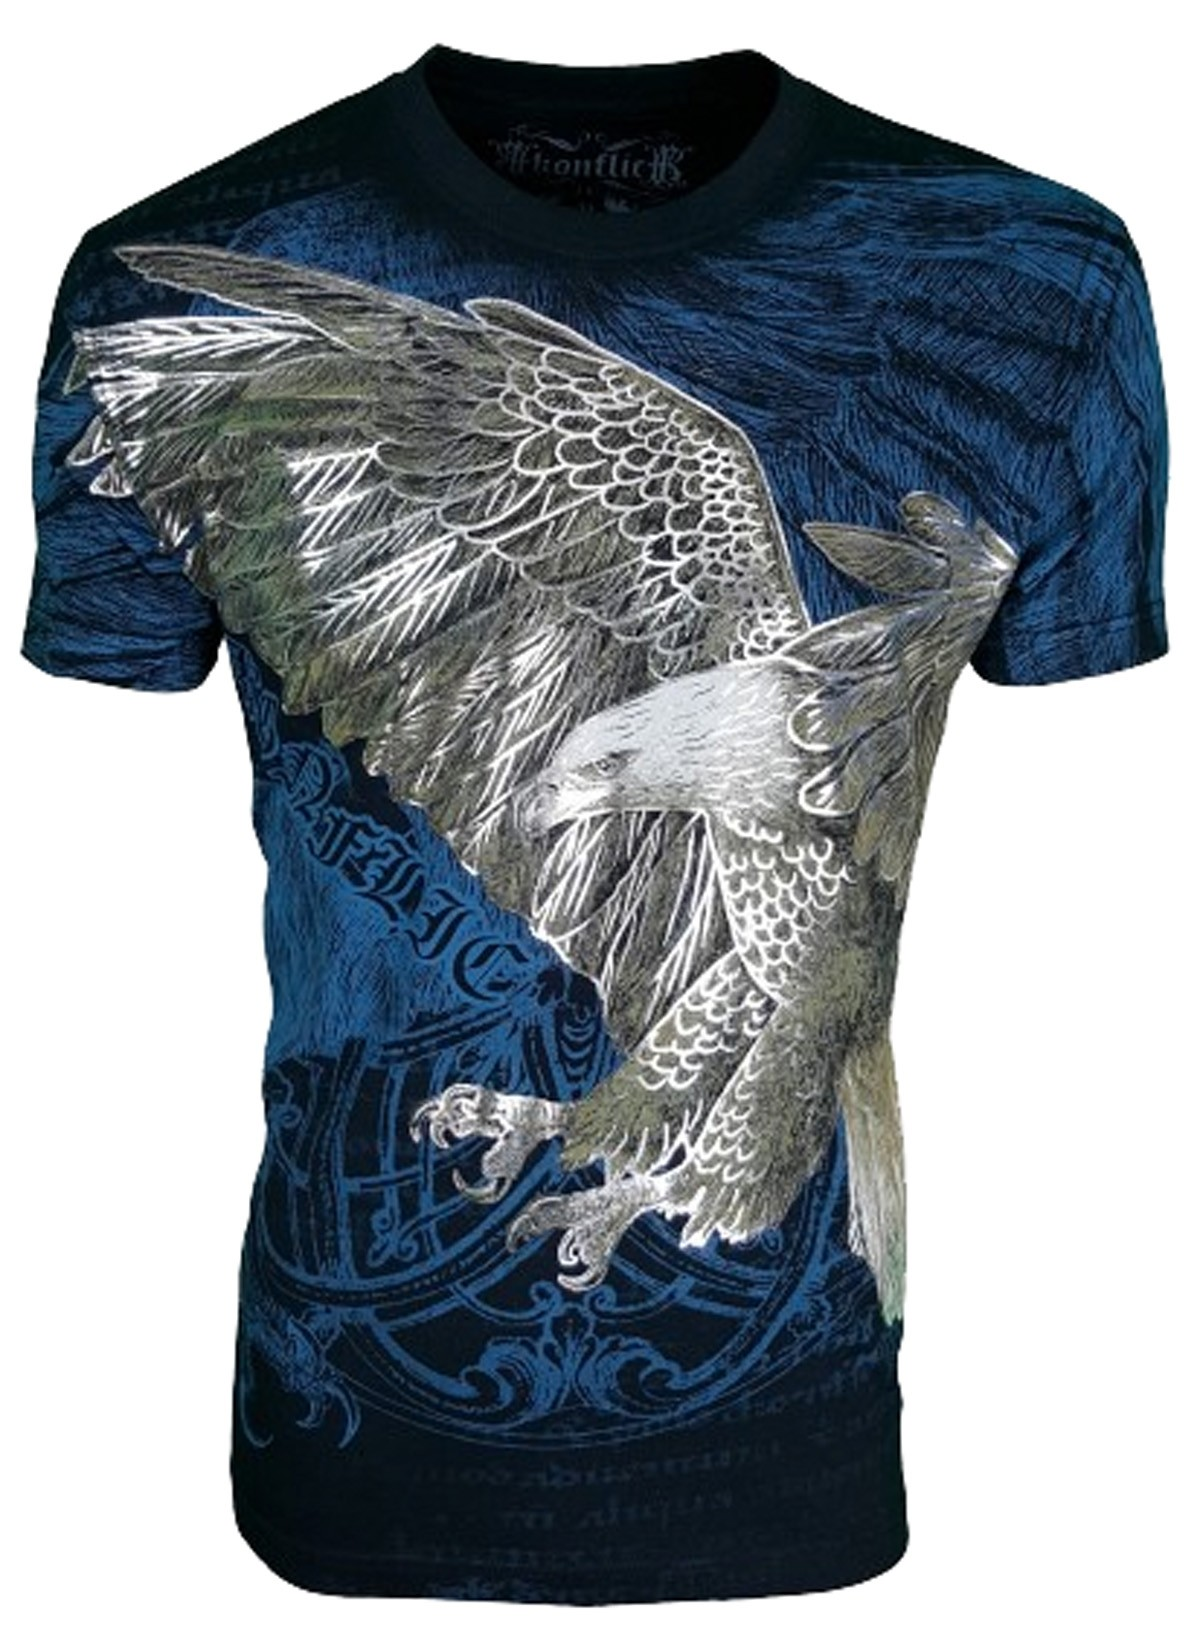 Konflic Clothing - Screaming Eagle T-Shirt